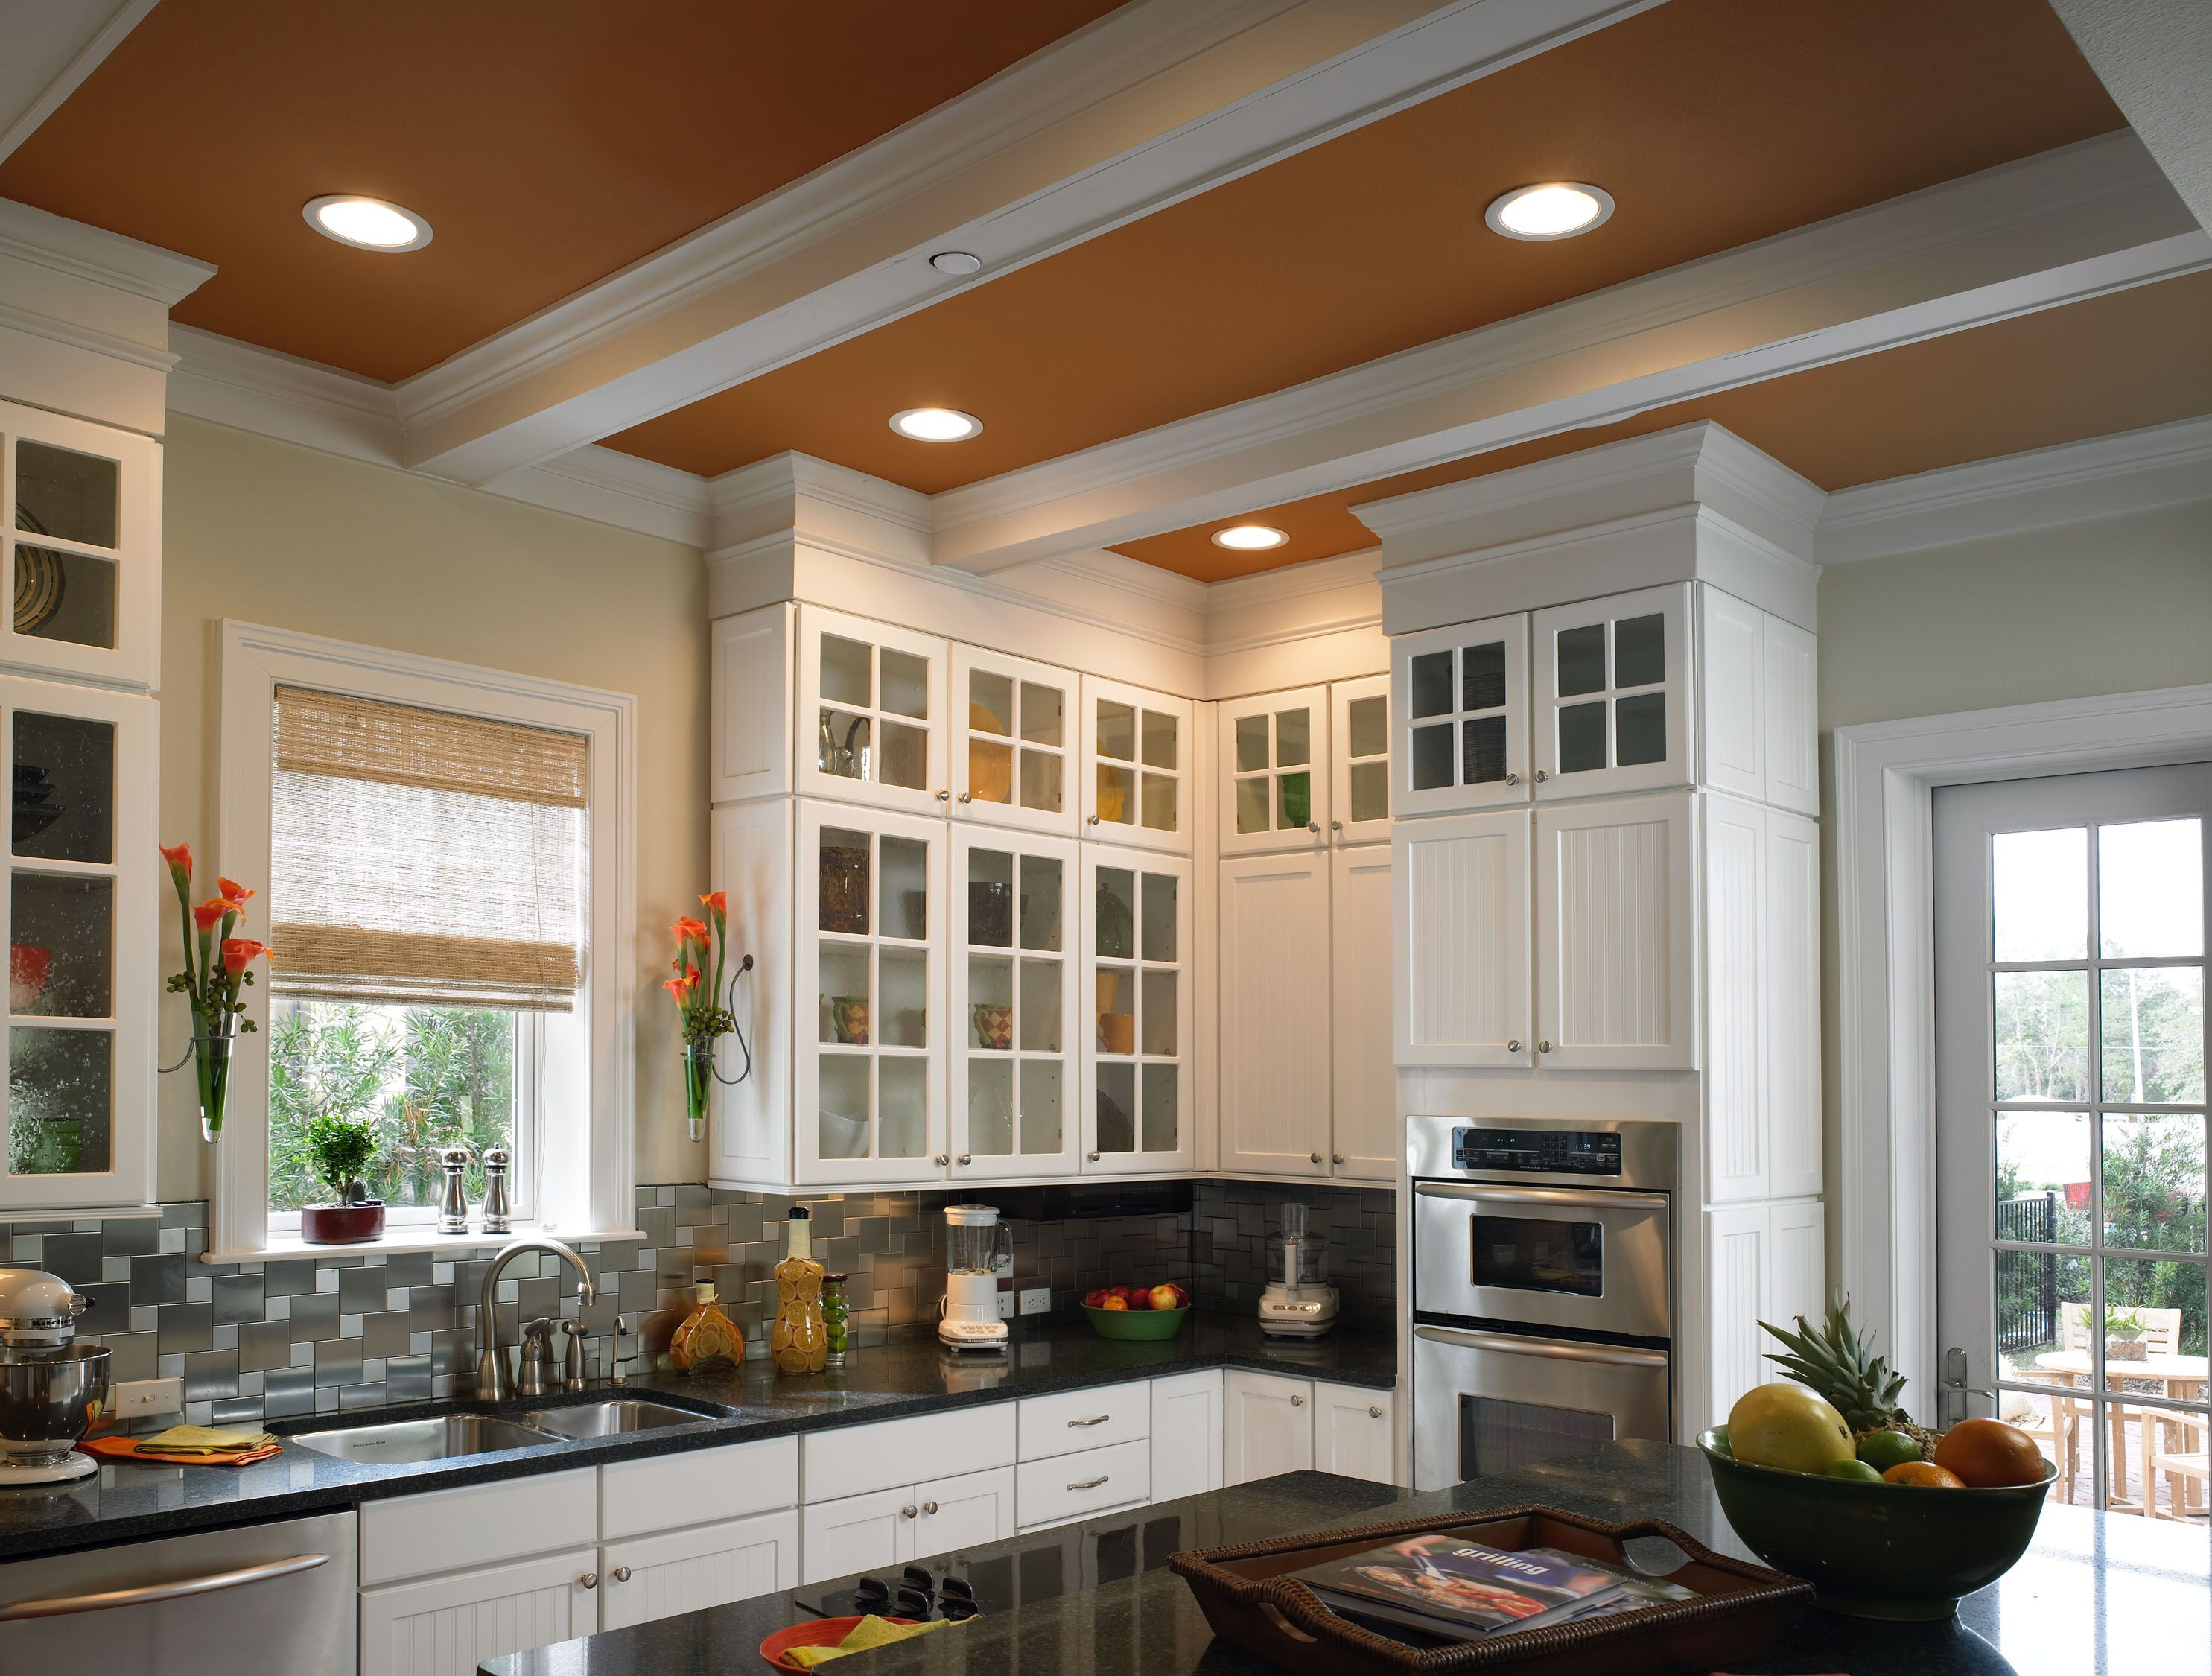 Decorative ceiling beams ideas fypon 39 s faux beams and a for Decorative beams in kitchen